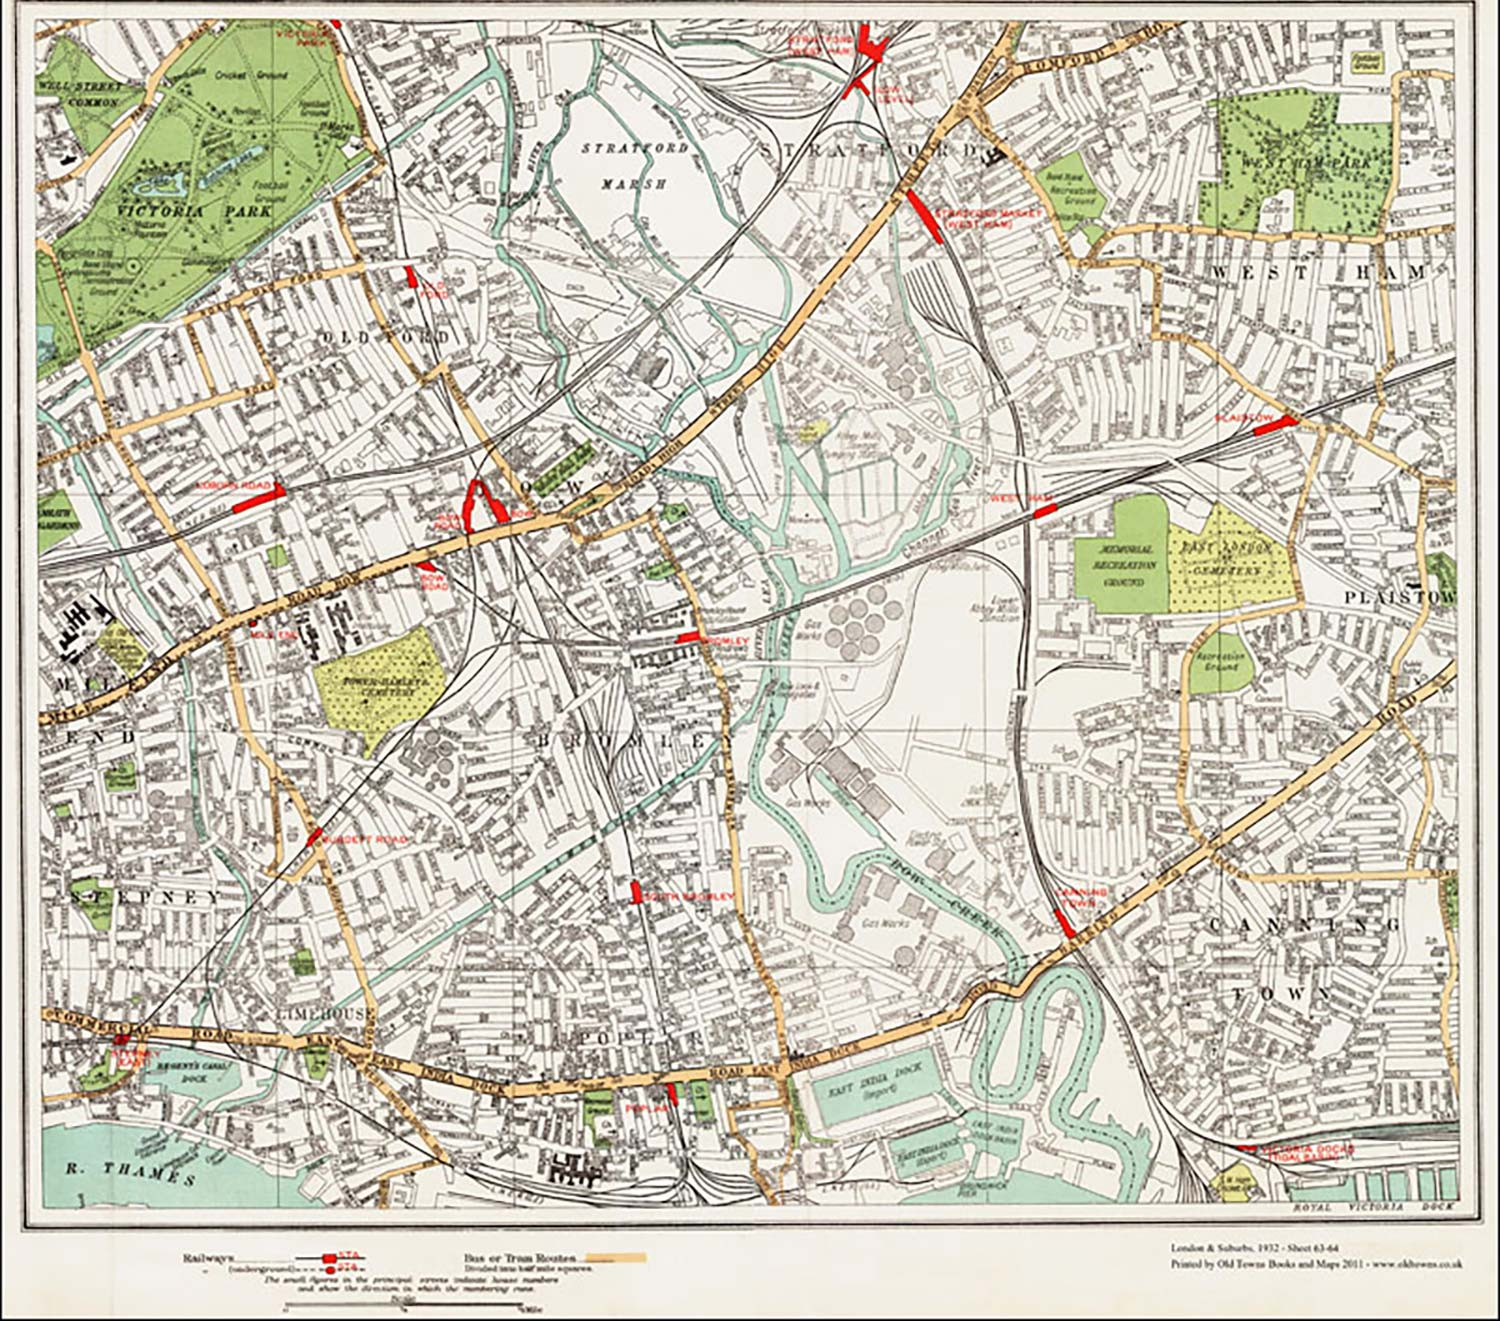 Train track map of Tower Hamlets from 1932